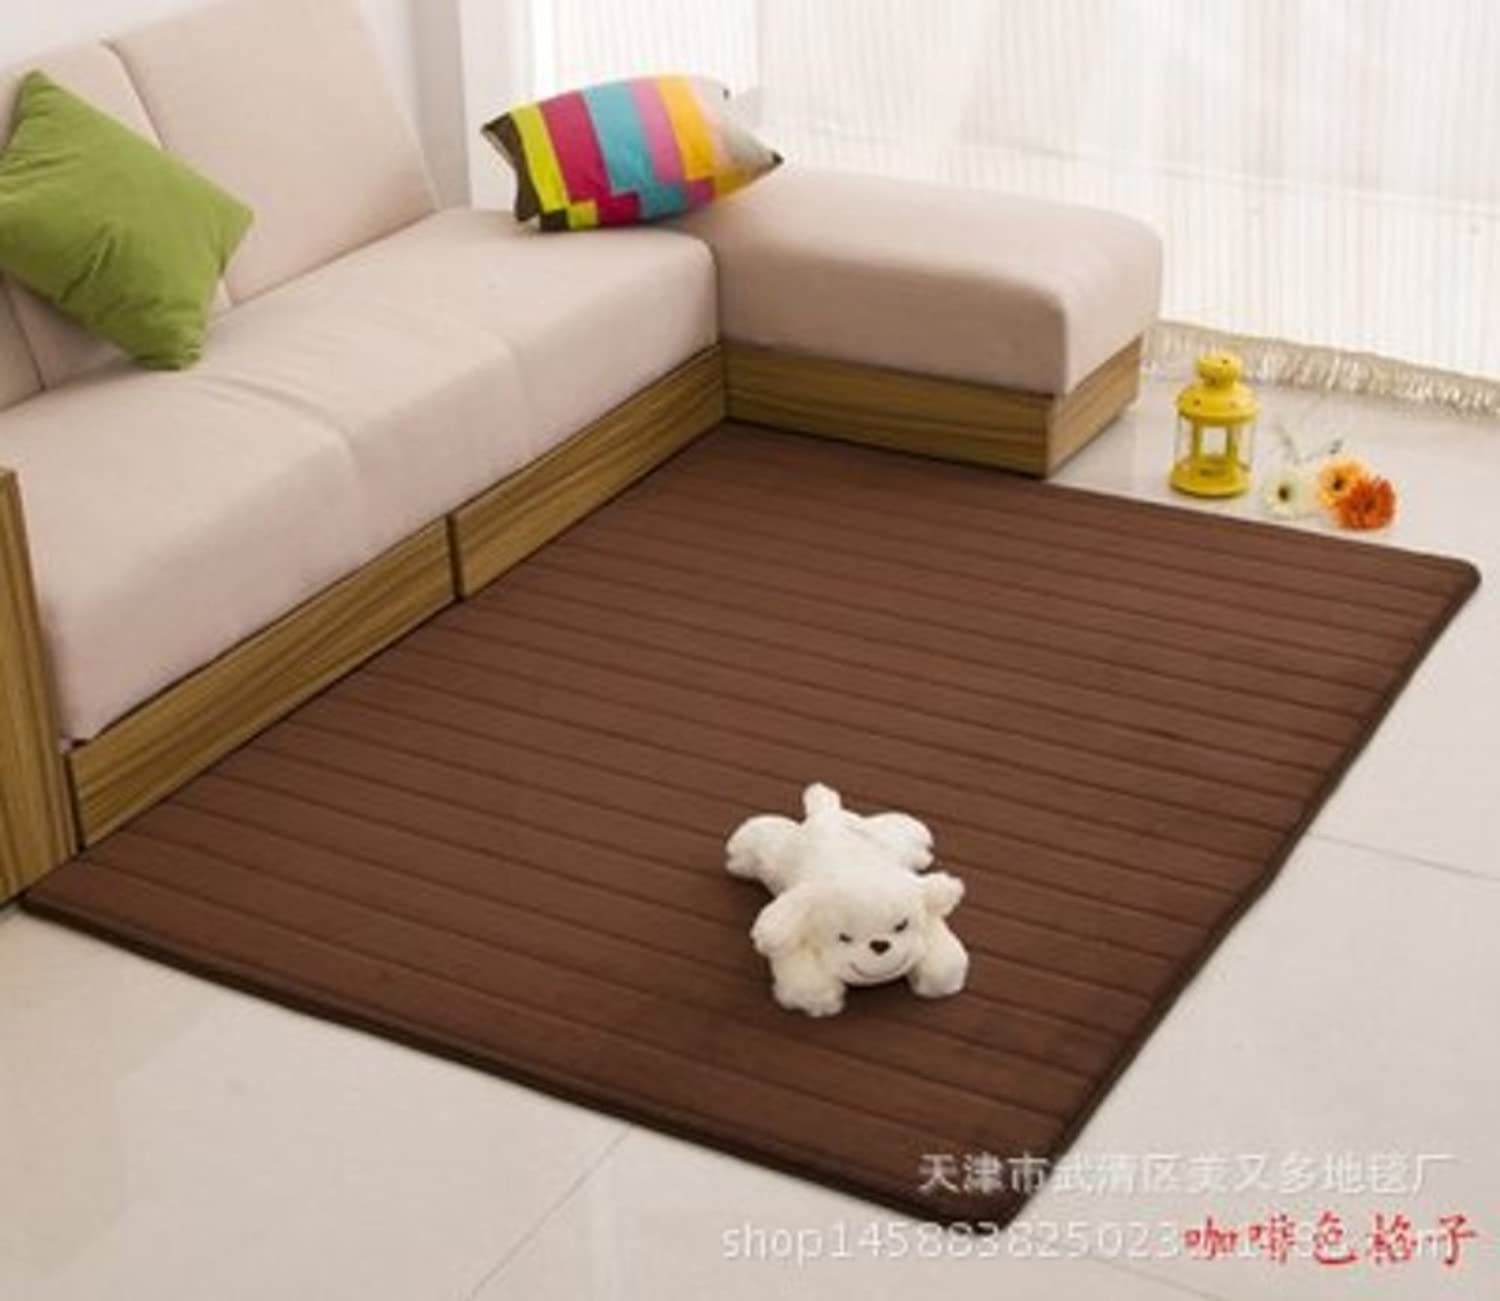 Floor Mat Coral Fleece Mat Living Room,Bedroom,Kitchen,Bathroom,Bedside Mats Doormat-C 140x200cm(55x79inch)